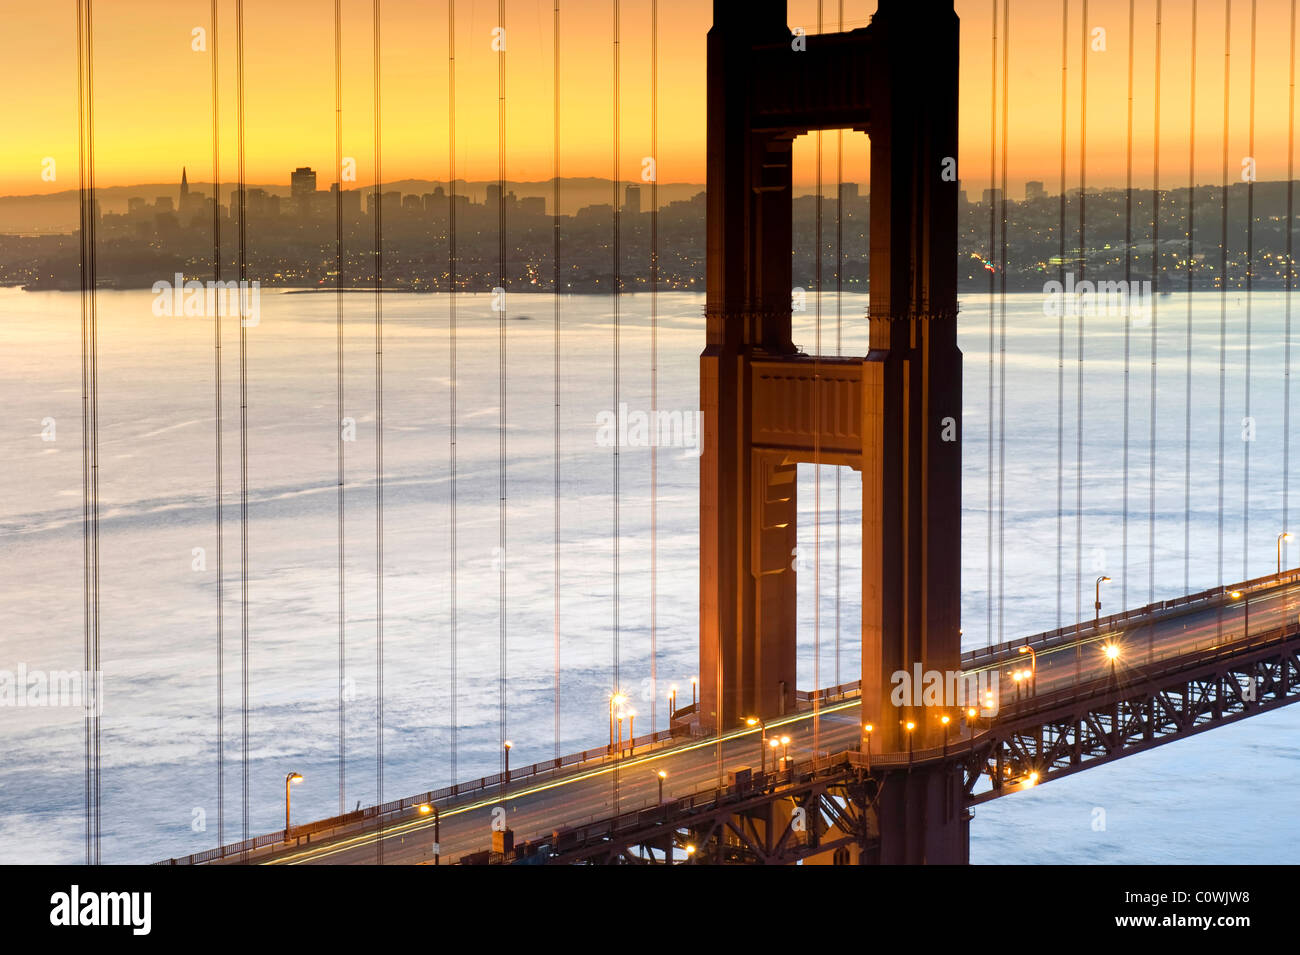 USA, California, San Francisco, Skyline der Stadt und Golden Gate Bridge Stockbild